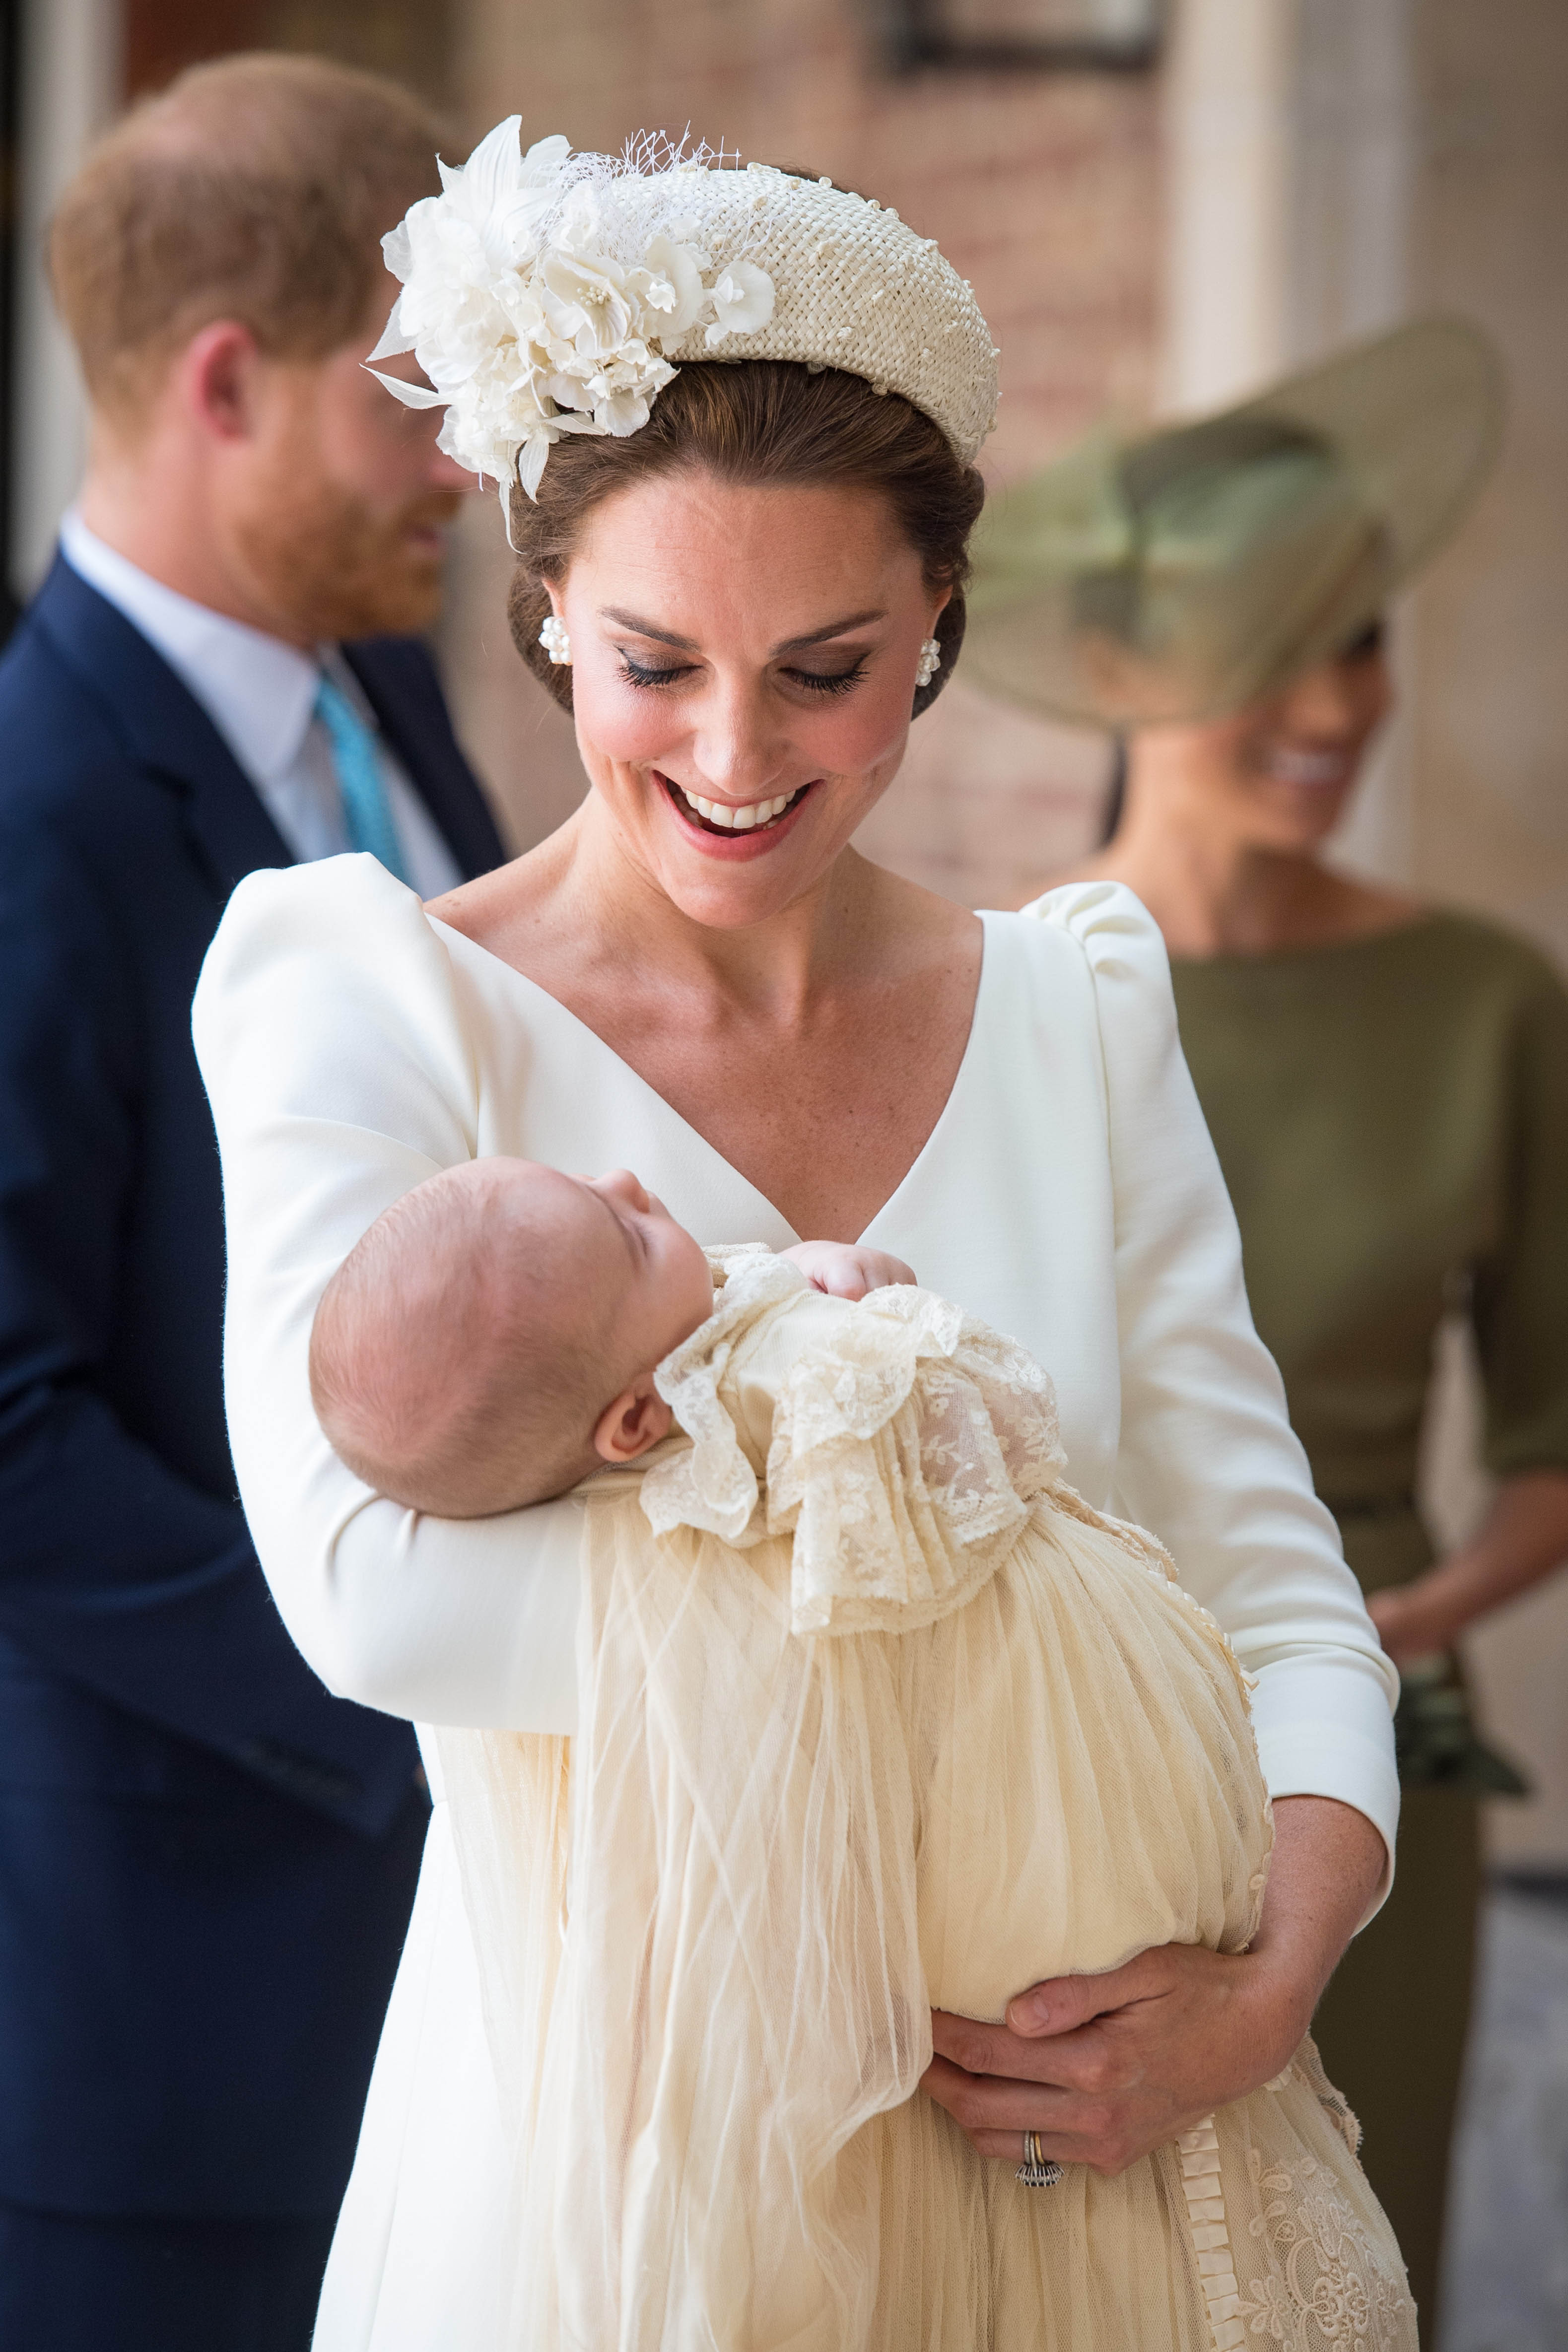 Catherine Duchess of Cambridge carries Prince Louis as they arrive for his christening service at the Chapel Royal, St James's Palace